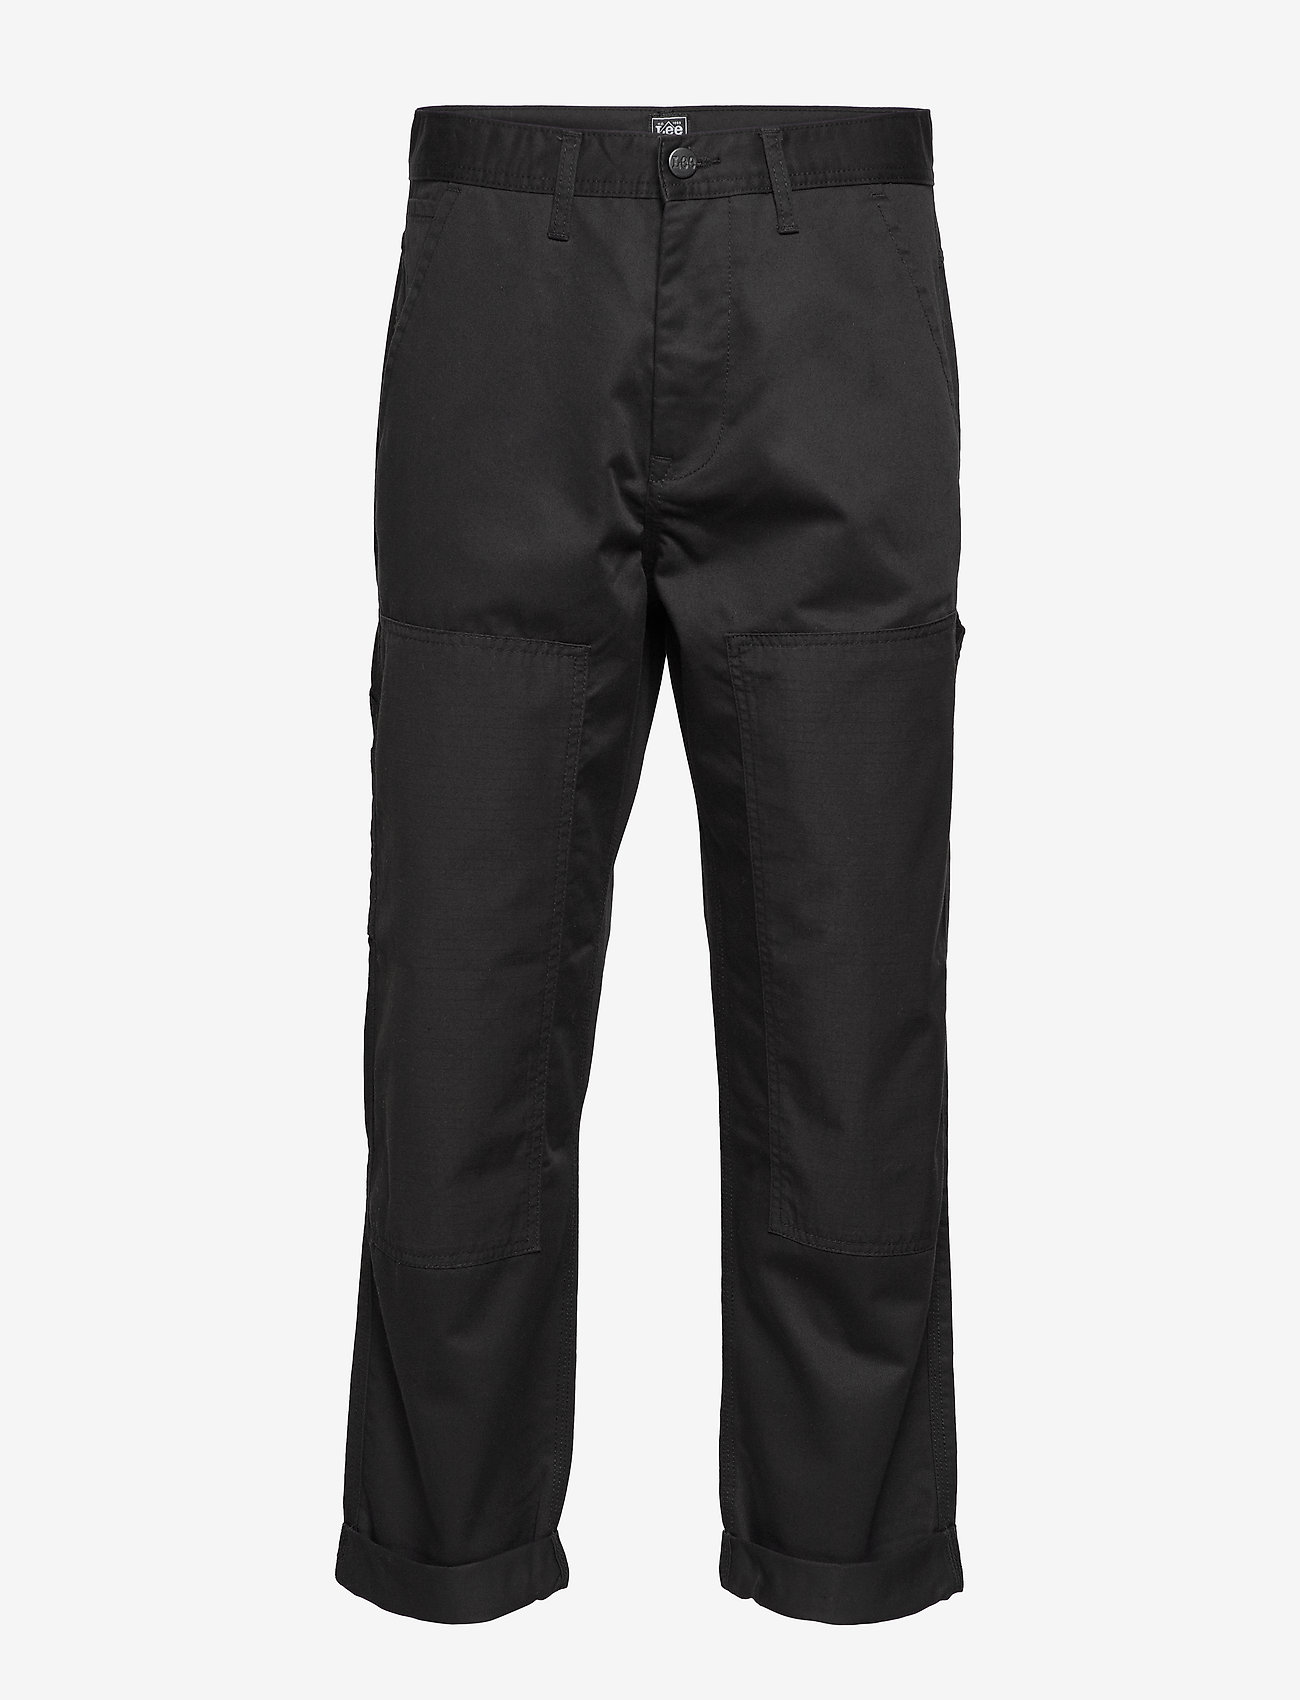 Lee Jeans - CARPENTER - bojówki - black - 0